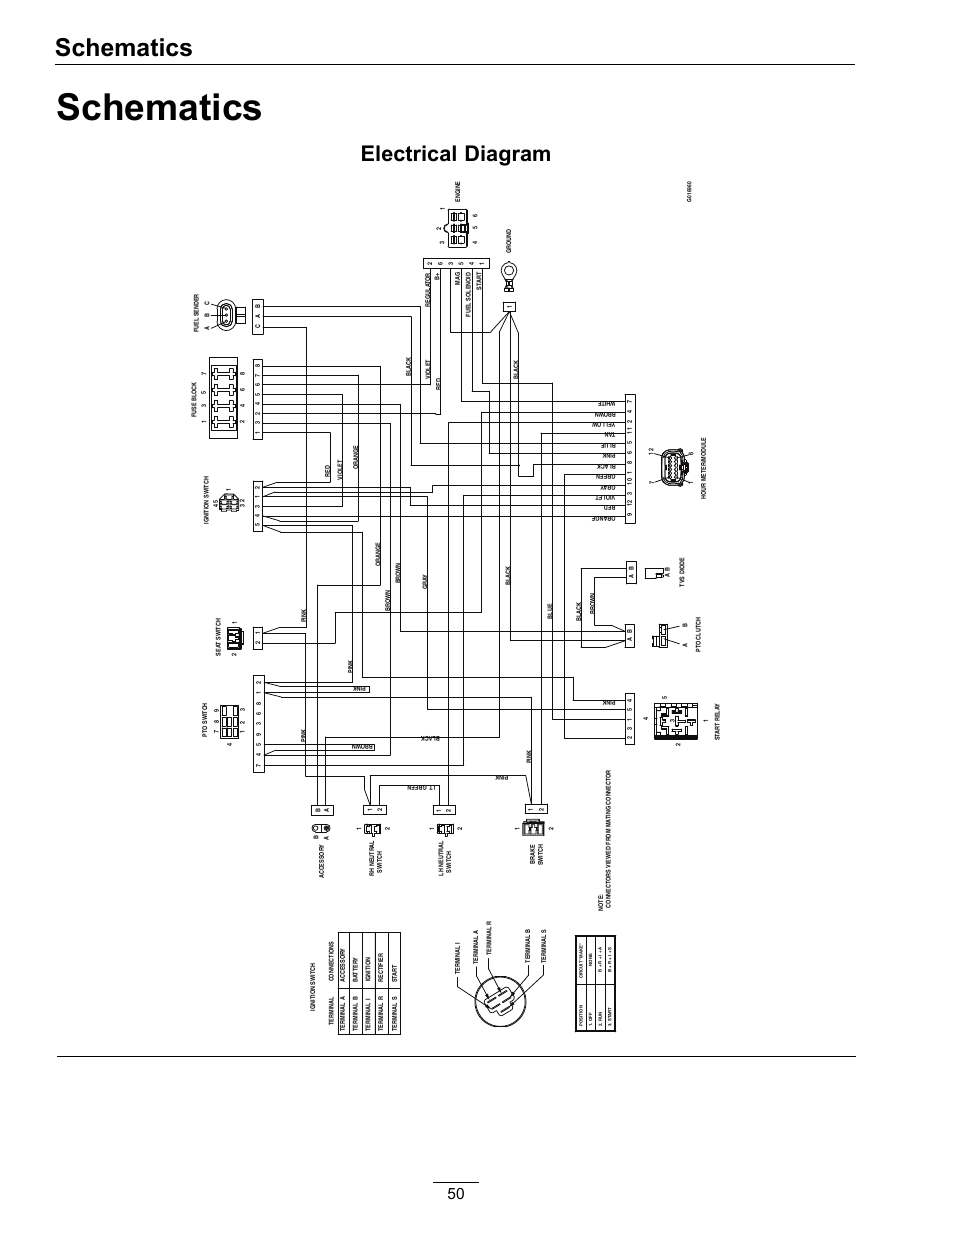 Wiring Diagram For Coleman Generator #0525300.19